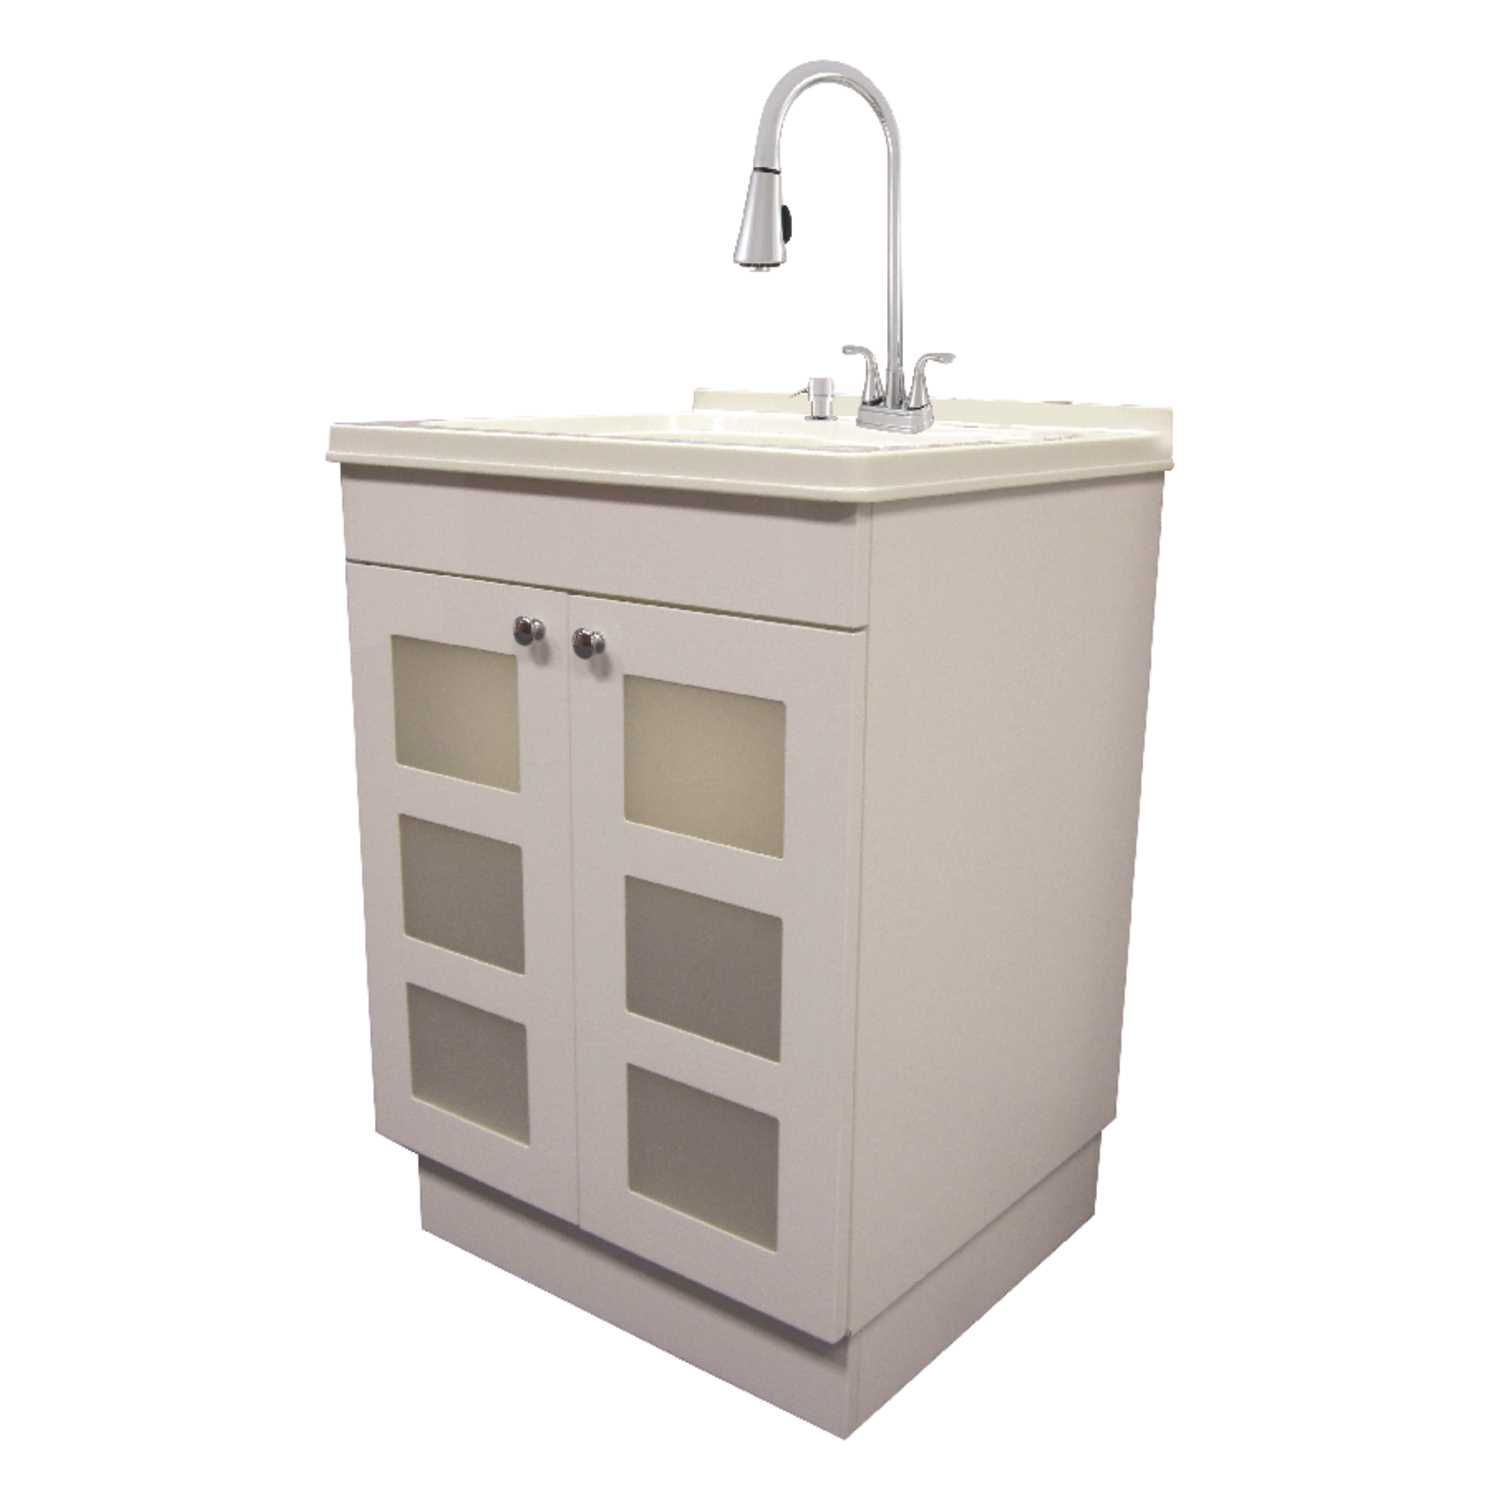 Exquisite Freestanding Melamine Faced Chipboard Utility Sink And